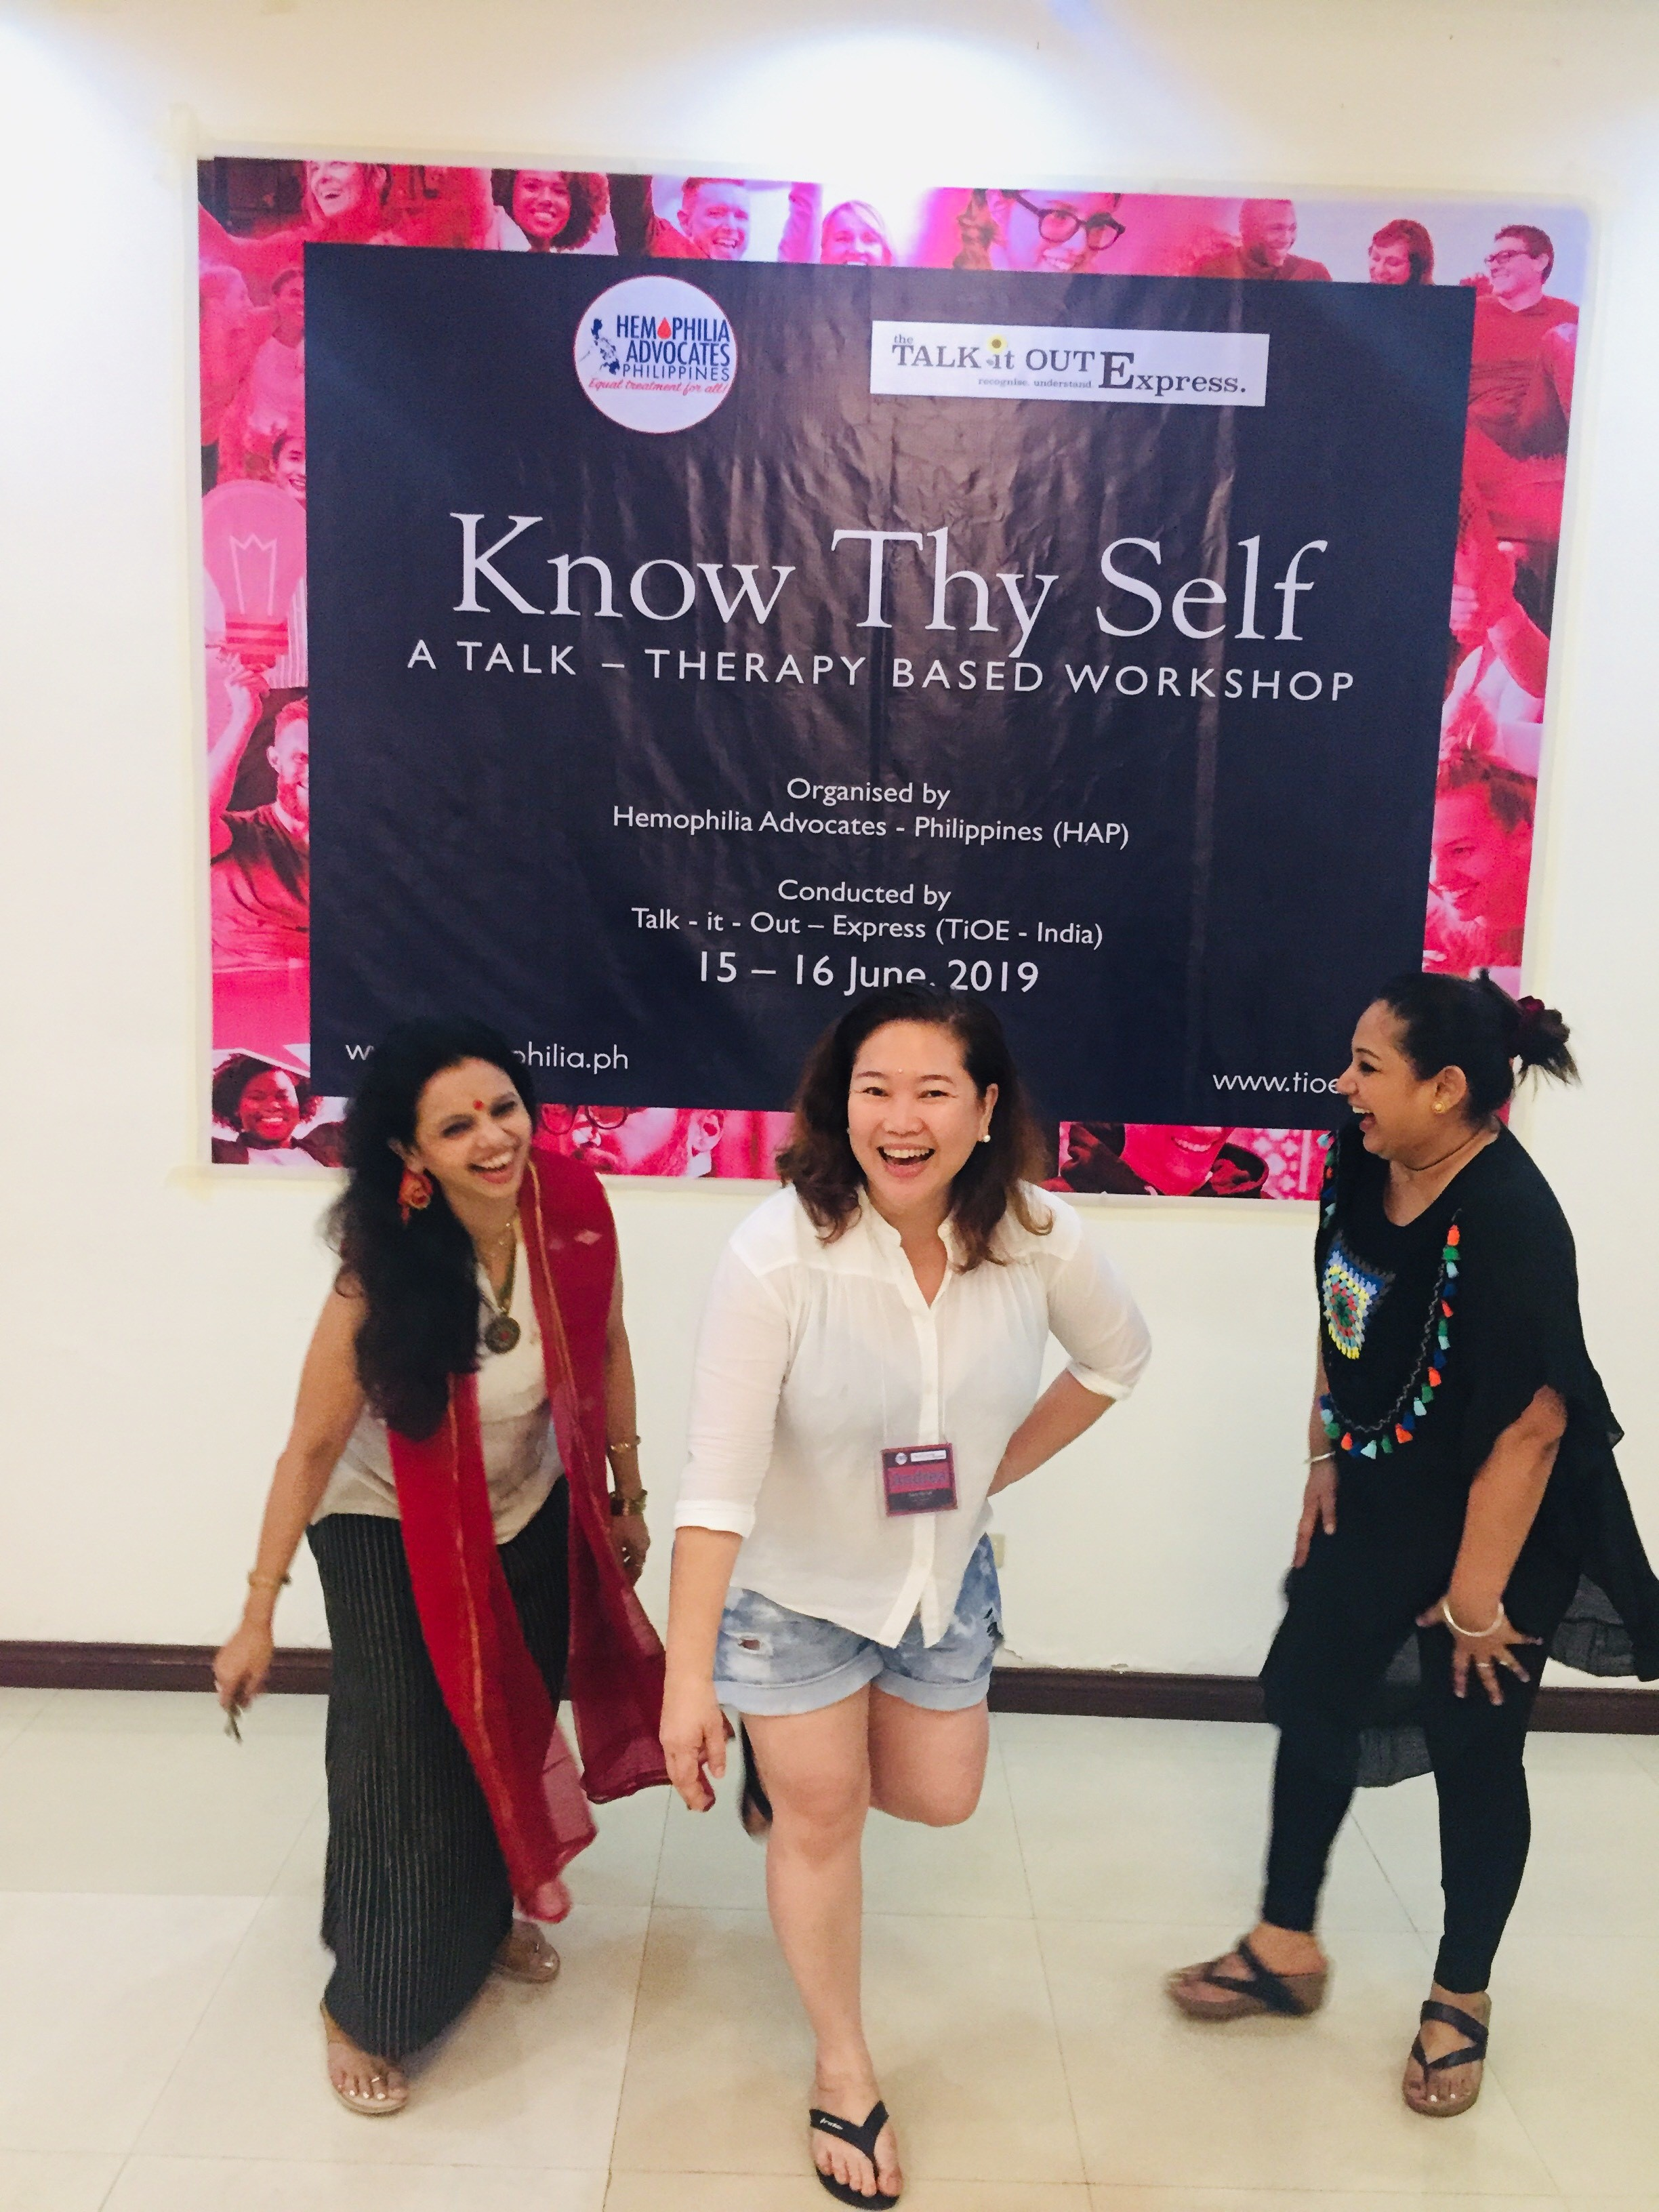 TiOE Founder and Philippines Workshop facilitator, Sujata Parashar (R) with HAP President, Andrea Trinidad (C) and Clinical psychologist and TiOE facilitator Tania Laskar (L) fun moment at workshop